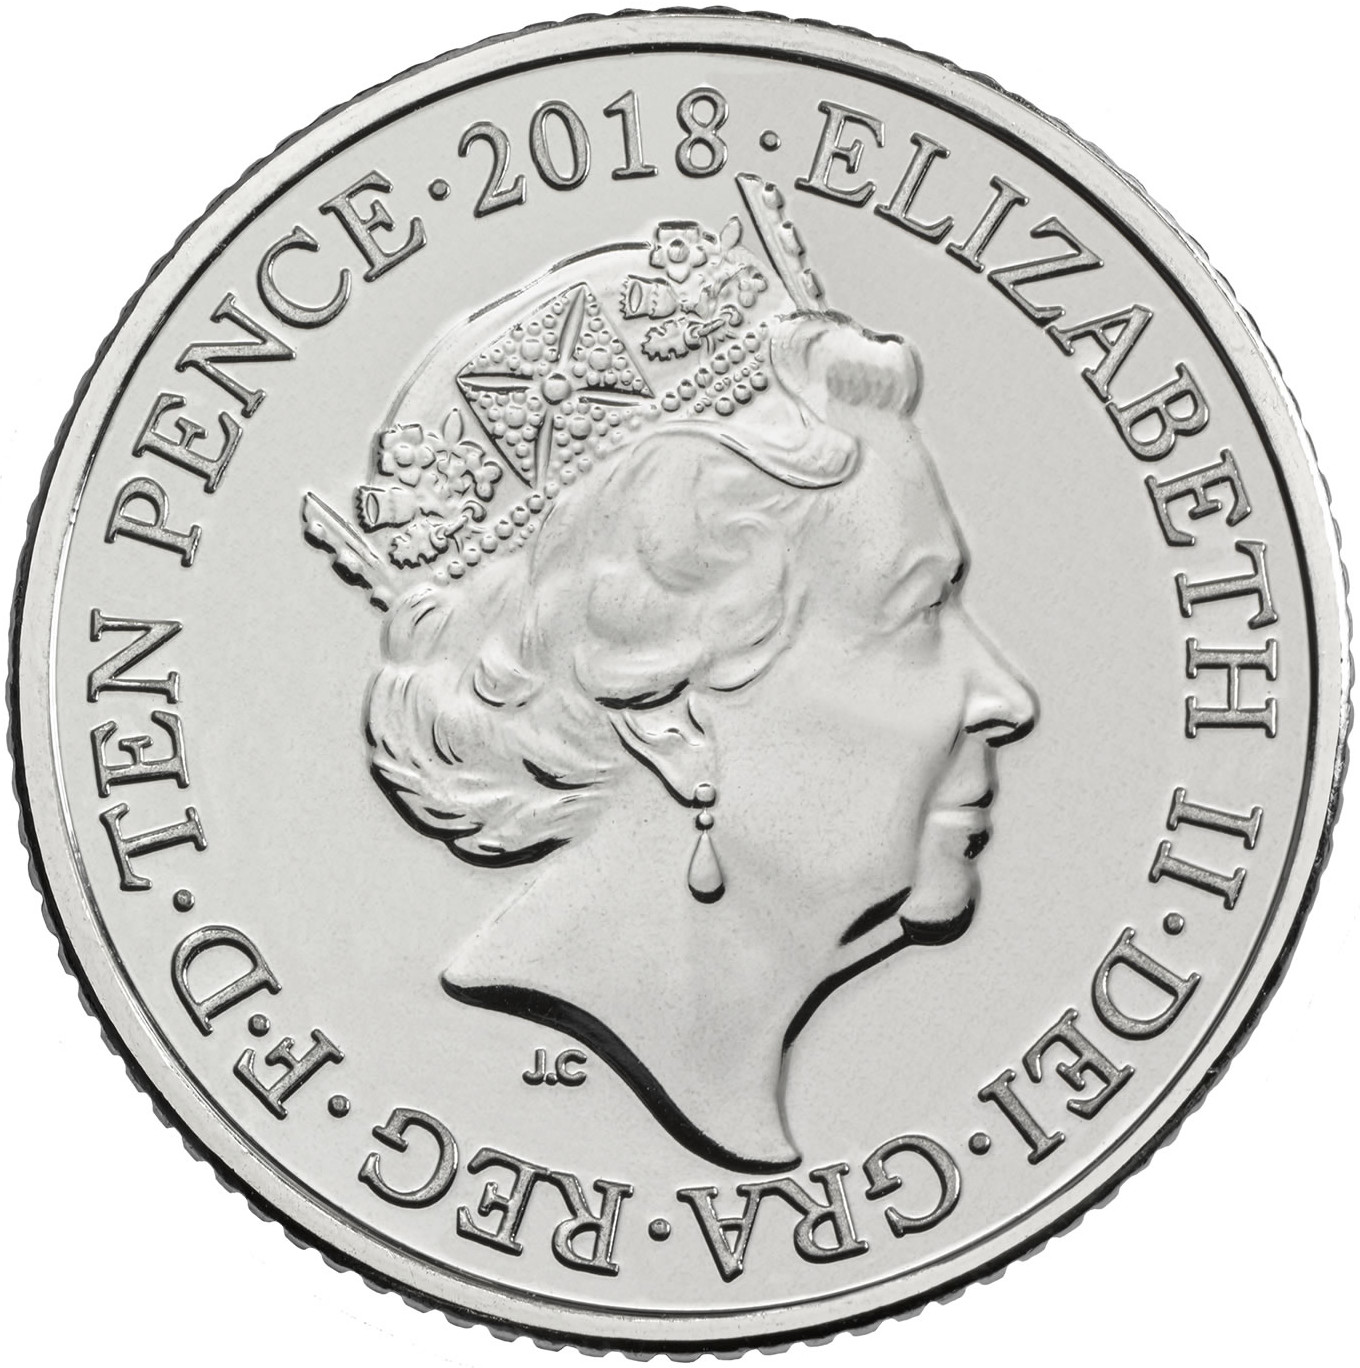 Ten Pence 2018 F - Fish and Chips: Photo F - Fish and Chips 2018 UK 10p Coin | The Royal Mint